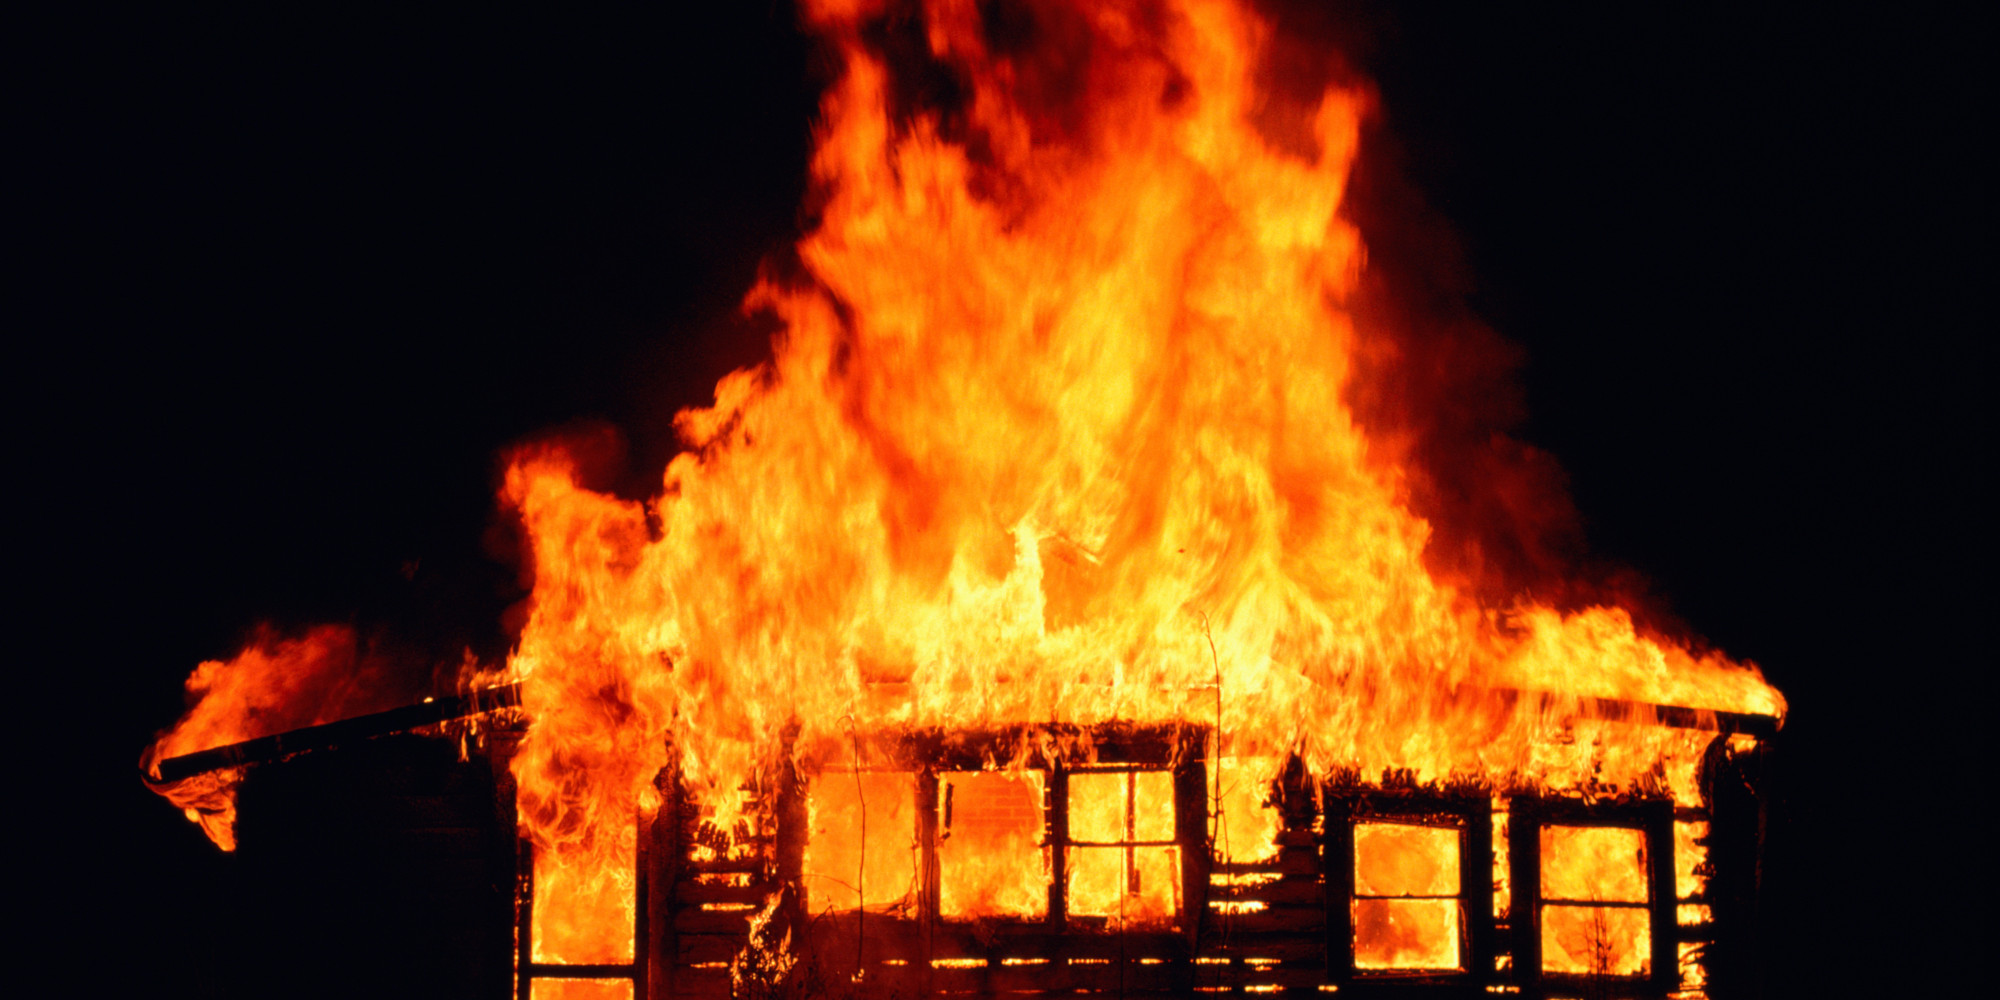 essay on house on firecaught on to kill spider house fire